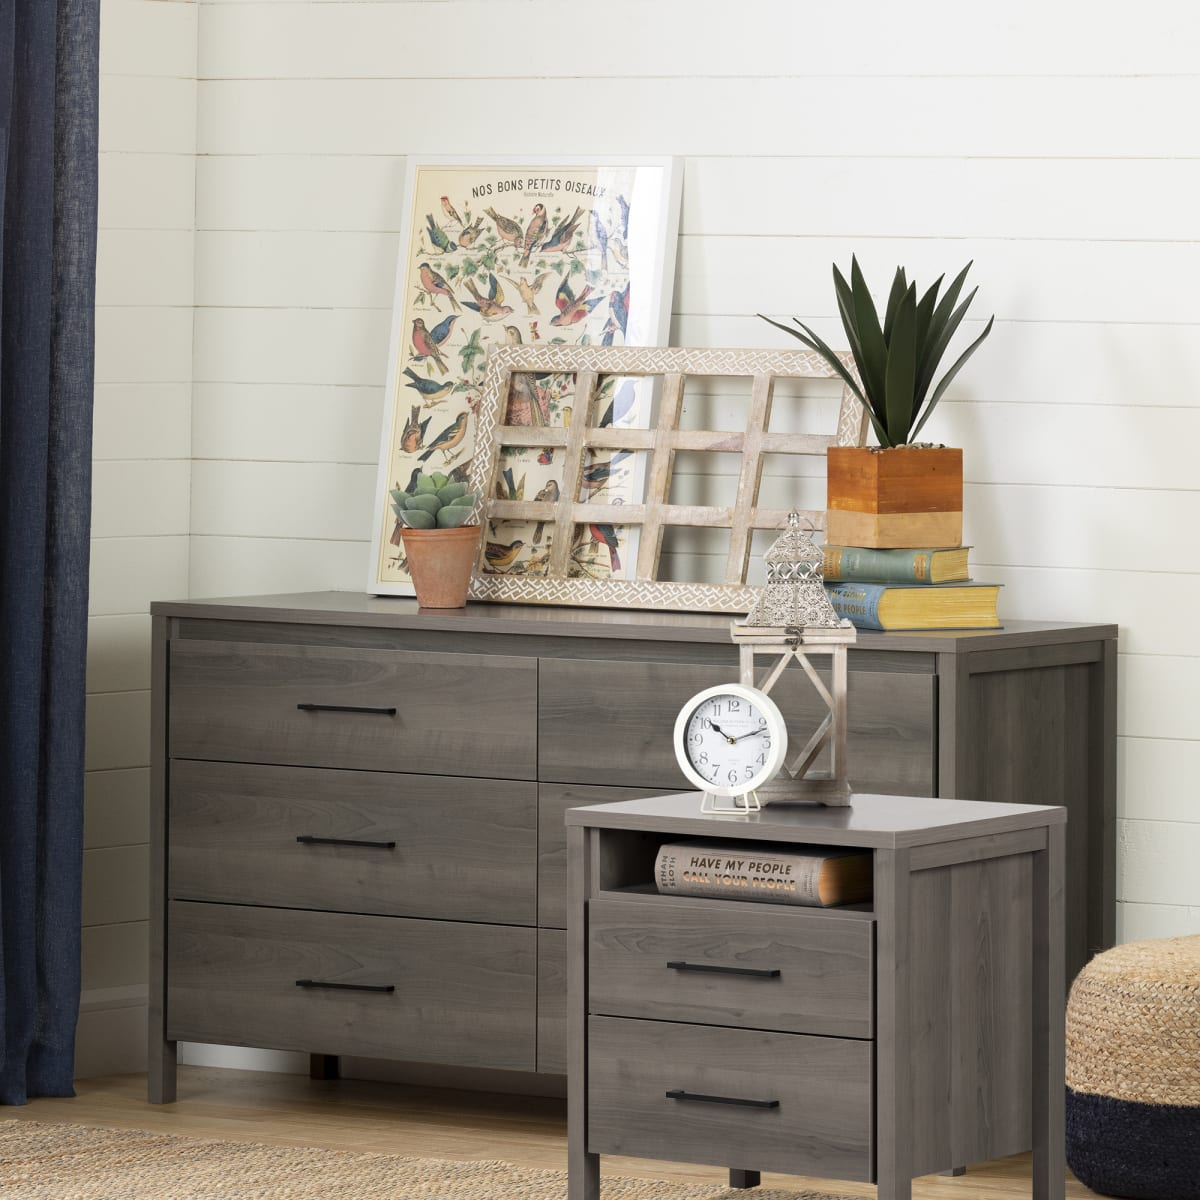 Gravity 6 Drawer Double Dresser And Nightstand Set Chest Master Bedroom Furniture Products South Shore Furniture Us Furniture For Sale Designed And Manufactured In North America